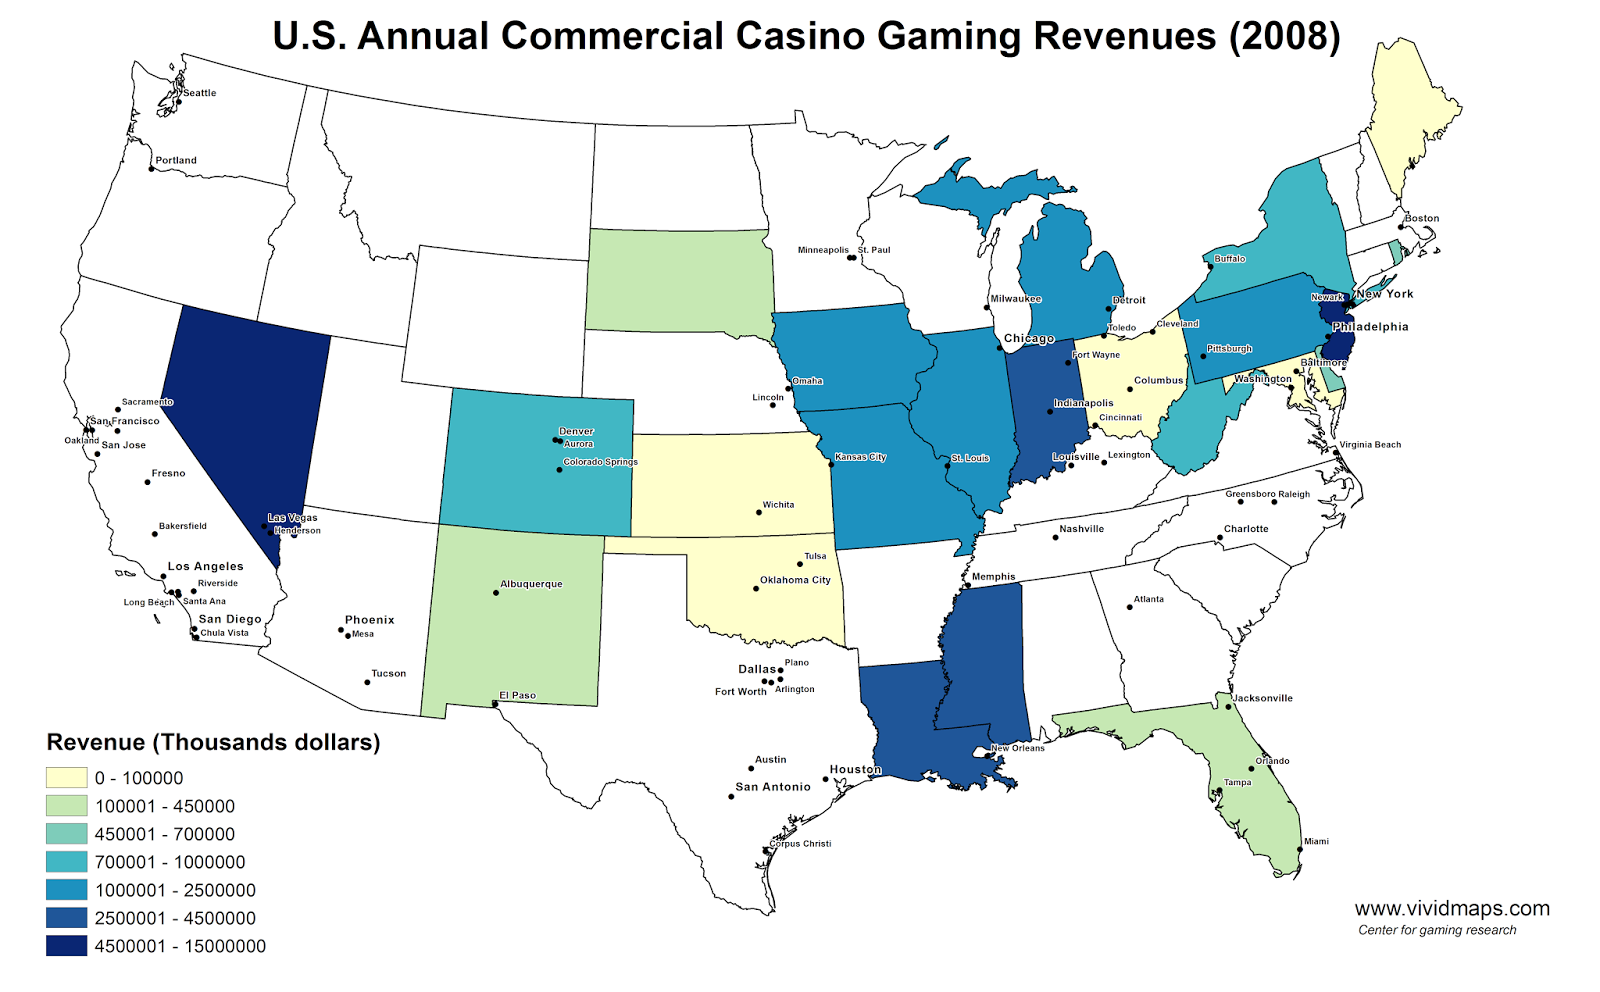 U.S. Annual Commercial Casino Gaming Revenues (2008)